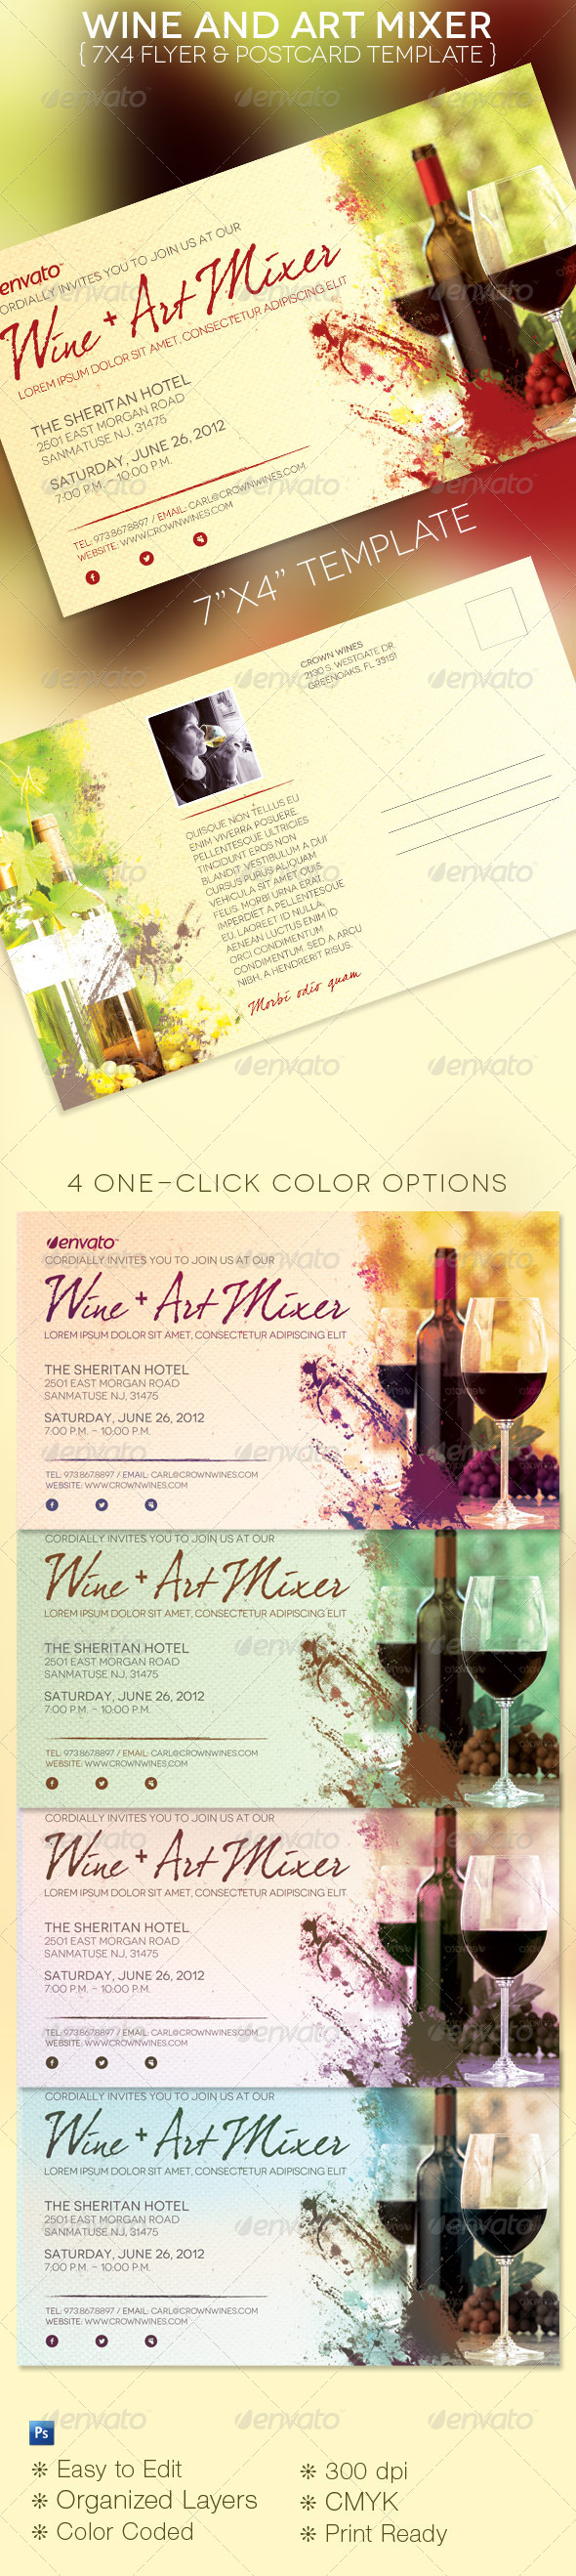 Wine & Art Mixer Flyer Template - Restaurant Flyers